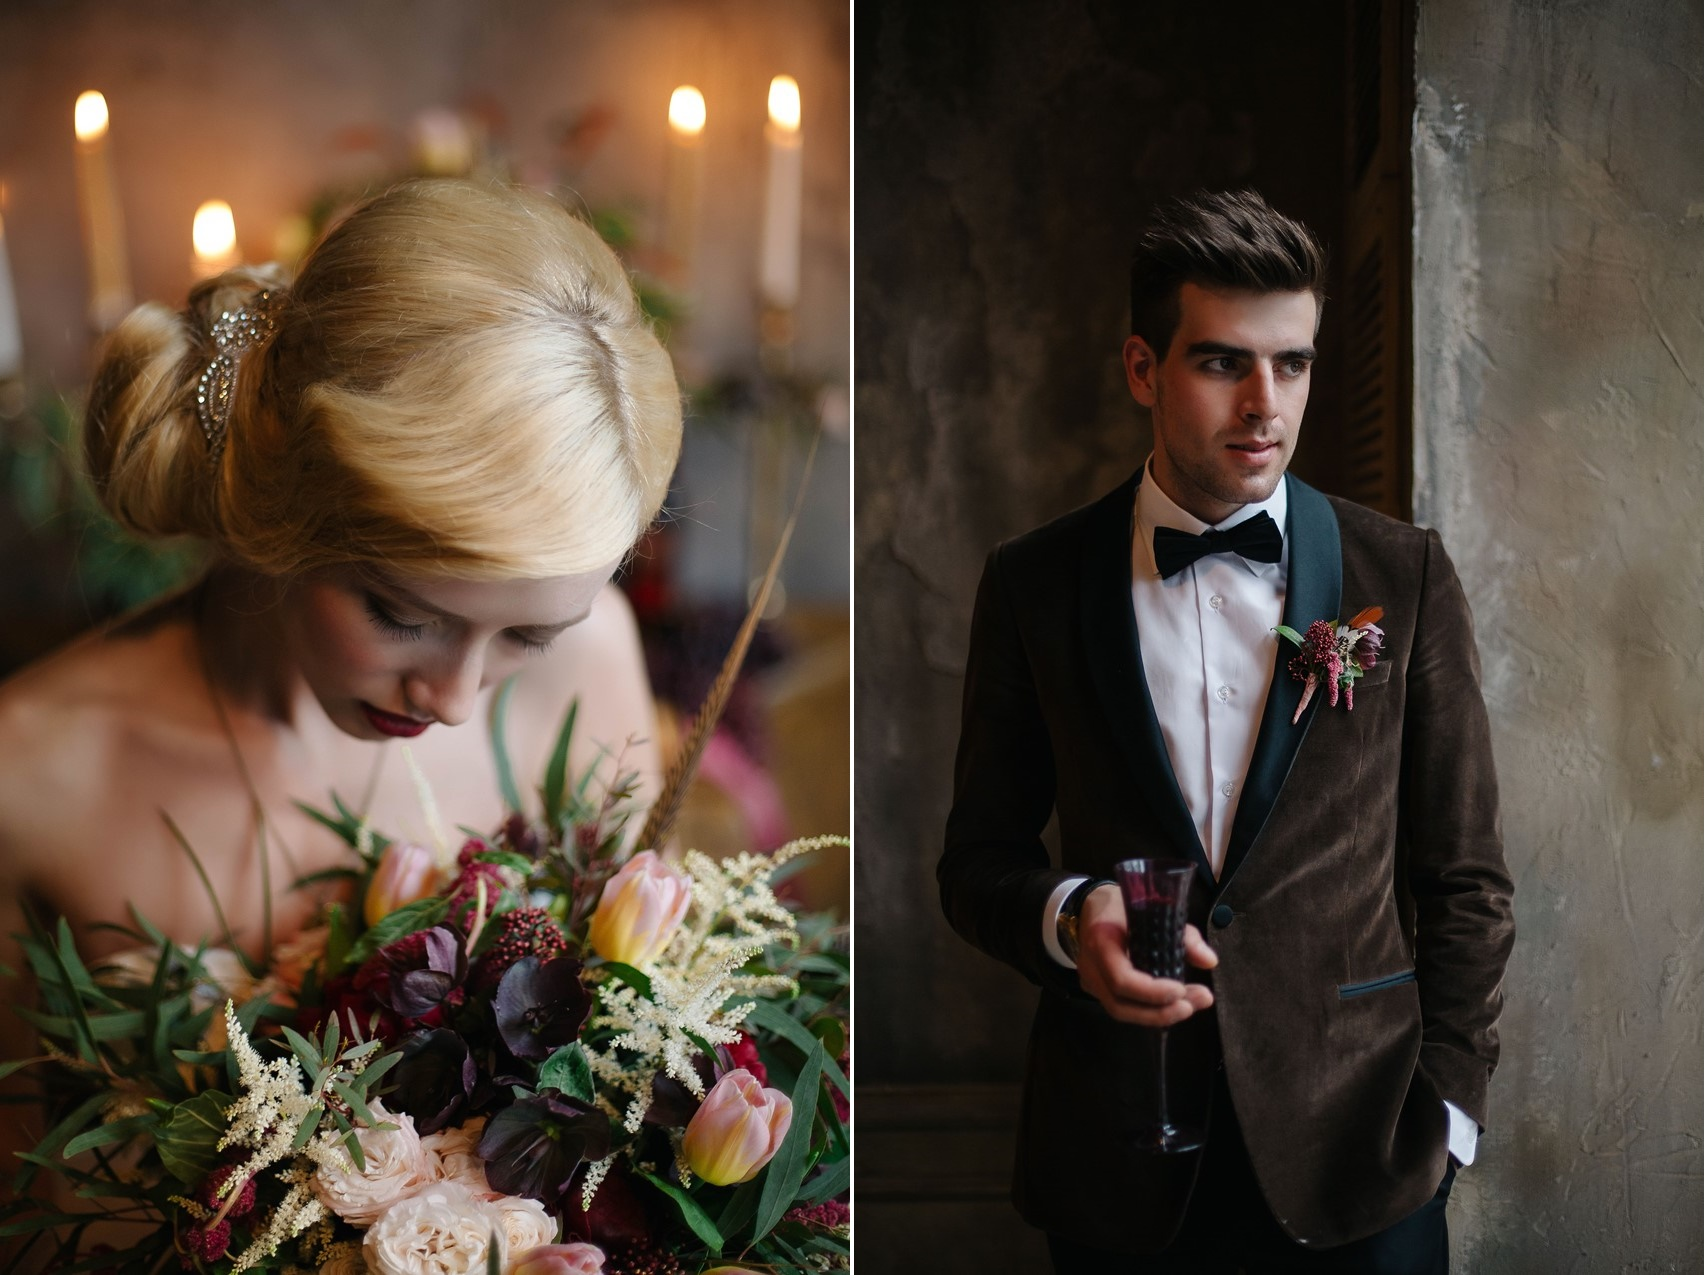 Elegant Vintage Bride & Groom